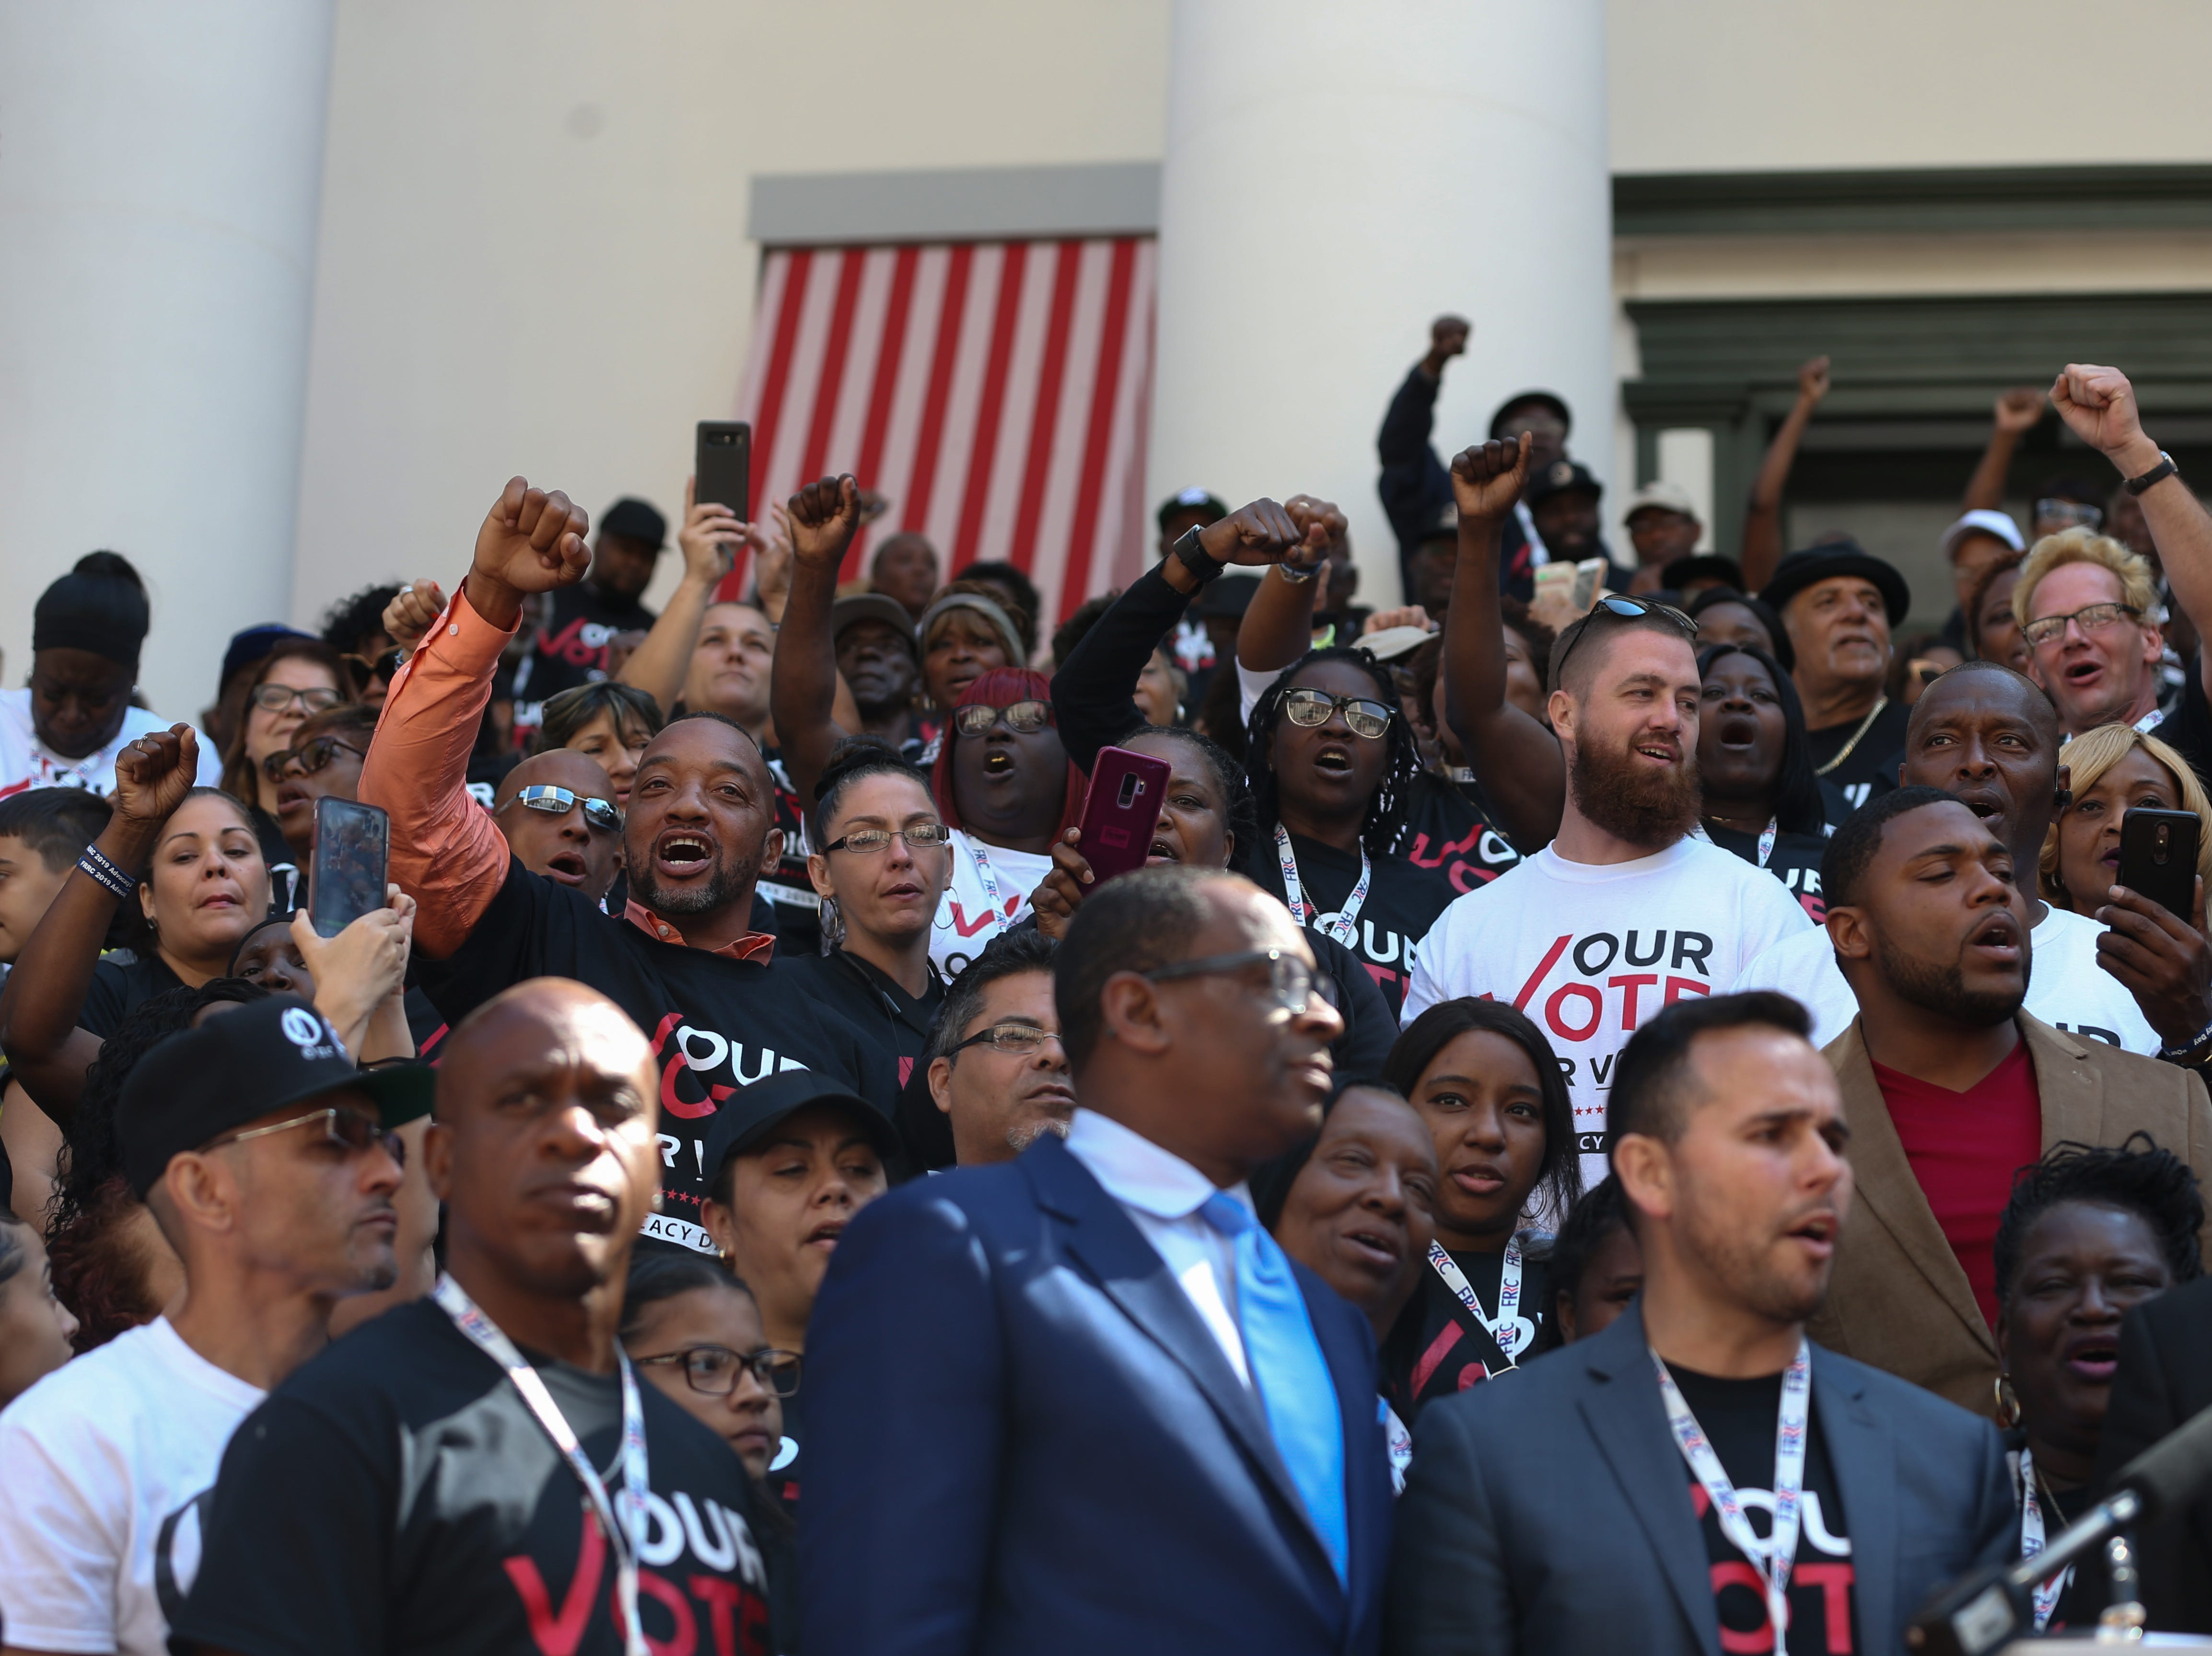 Five hundred Floridians with felony convictions whose voting rights were restored by vote in November, gathered in the courtyard of the Florida State Capitol Tuesday to rally before meeting with legislators to advocate for Amendment 4 legislation.